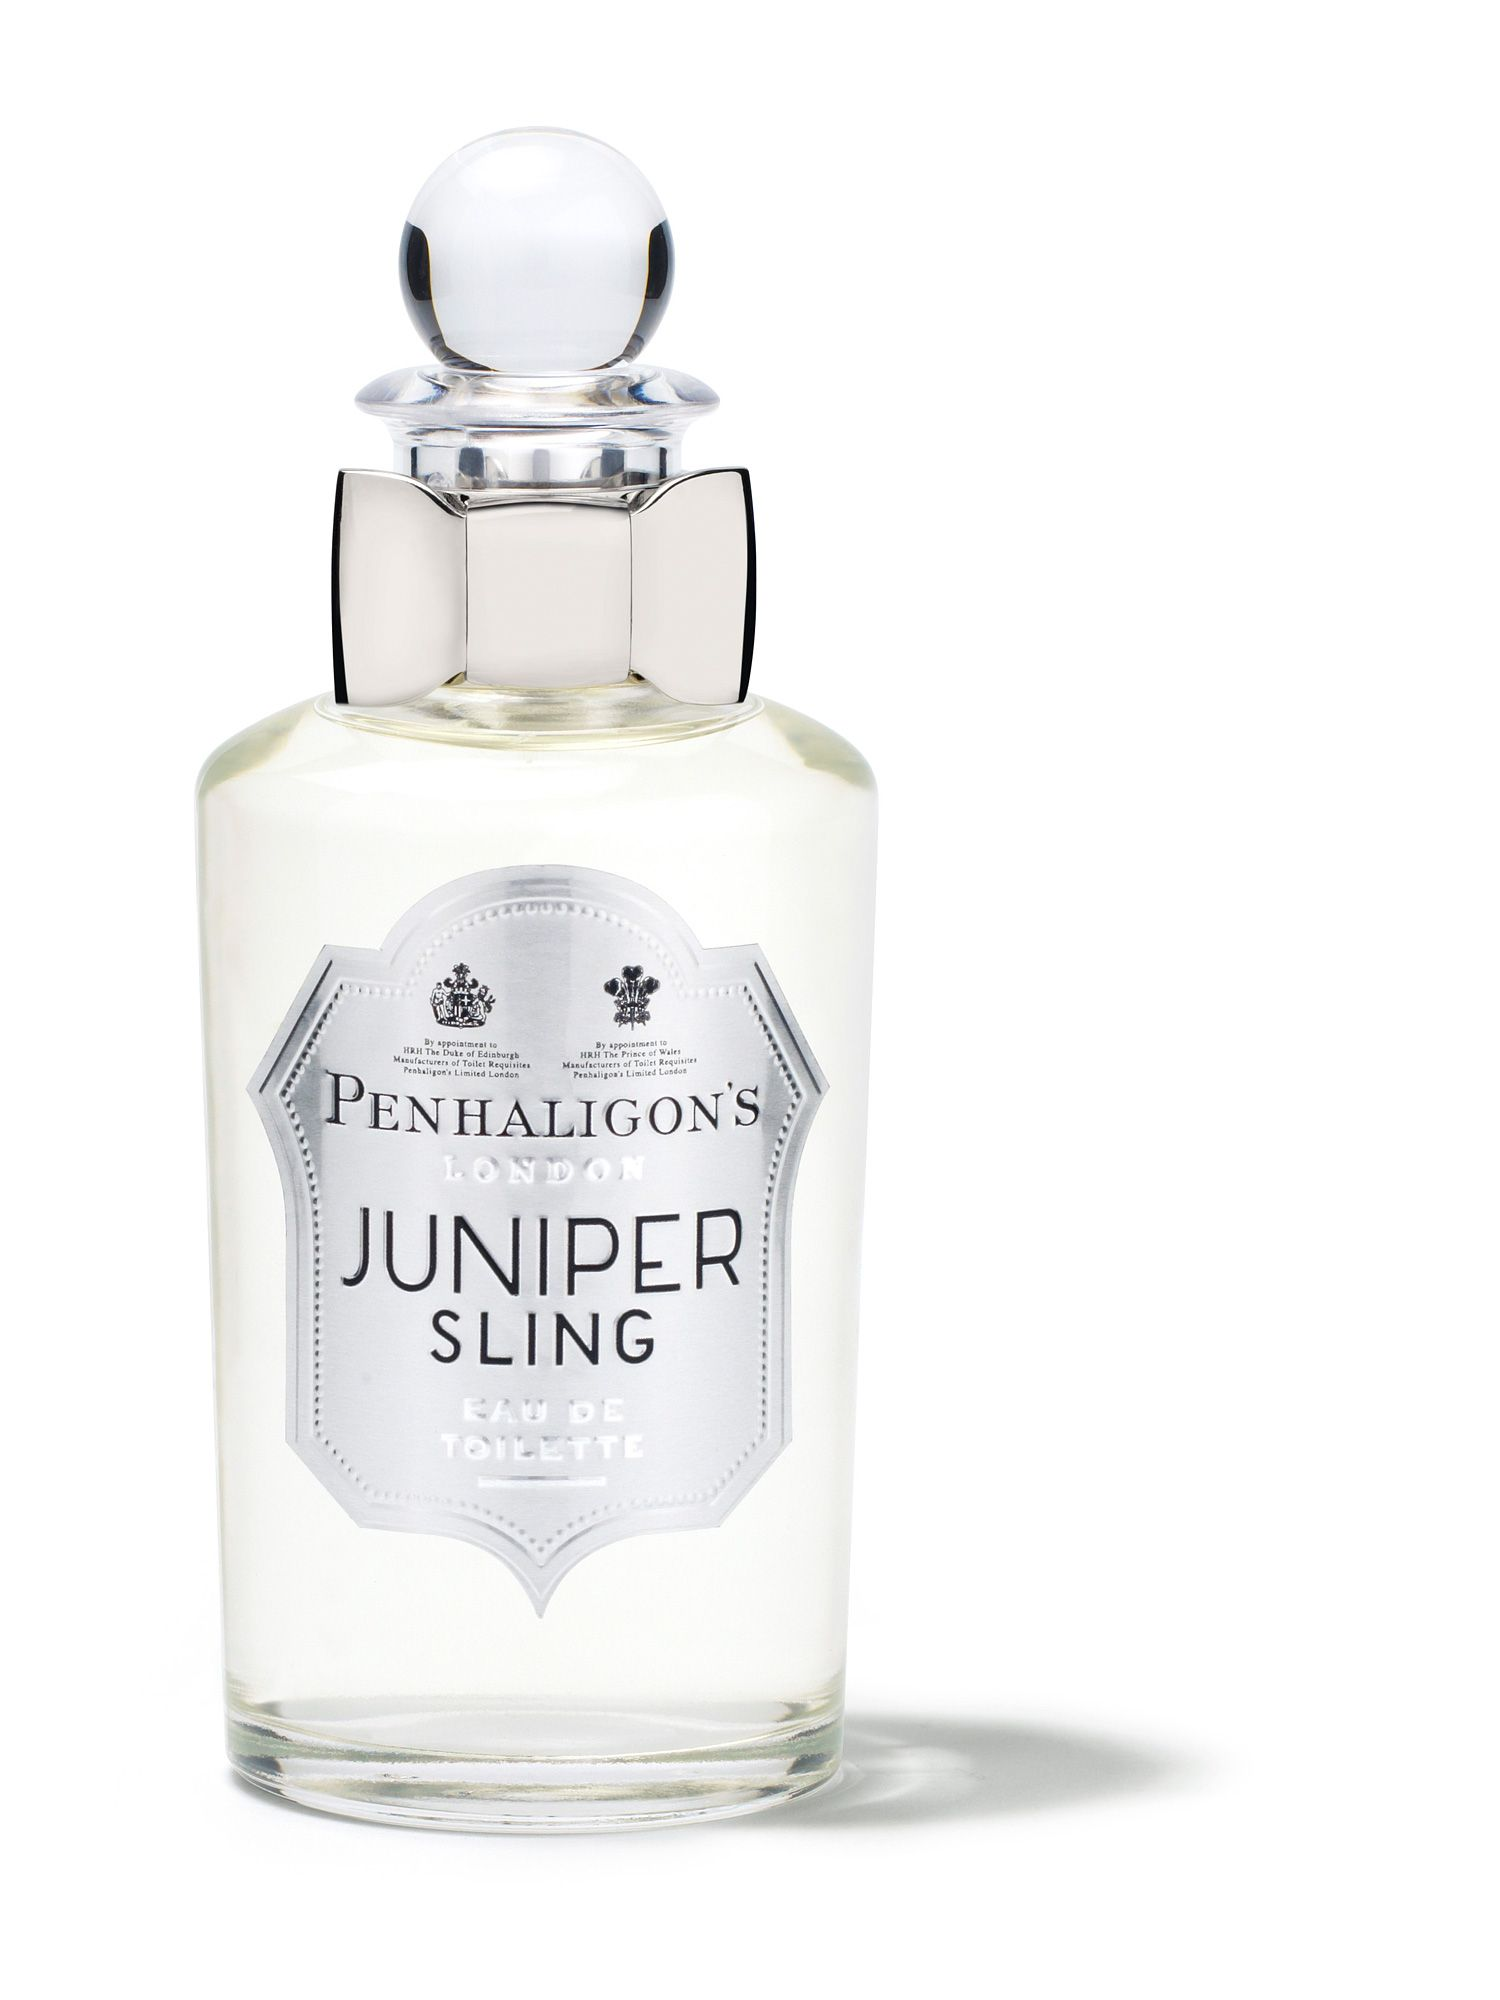 Juniper Sling Eau de Toilette 50ml